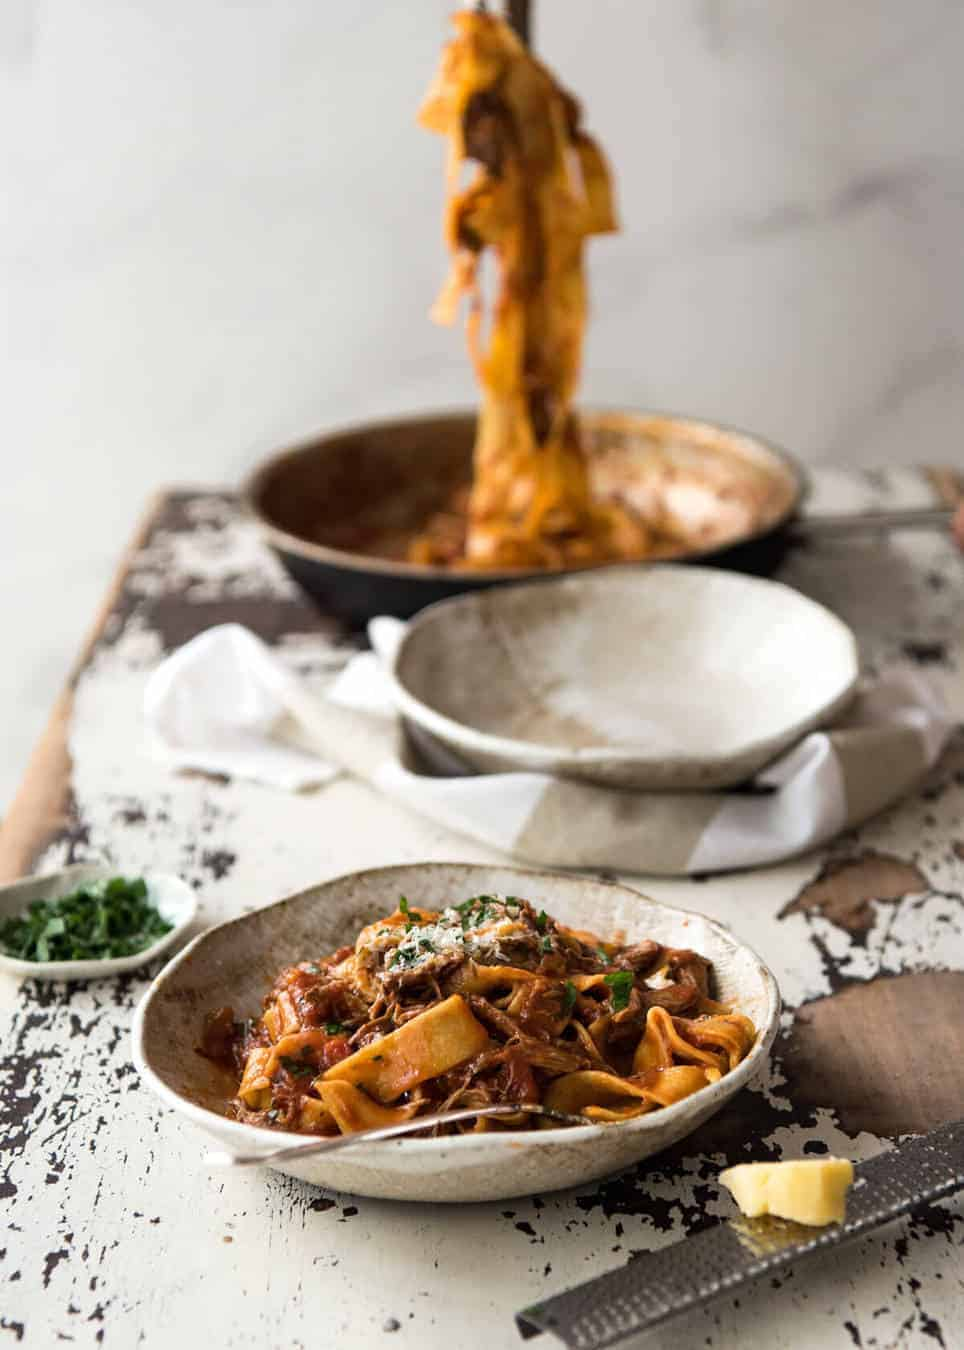 Rich Slow Cooked Shredded Beef Ragu Sauce With Pappardelle Pasta Stunning Italian Fort Food